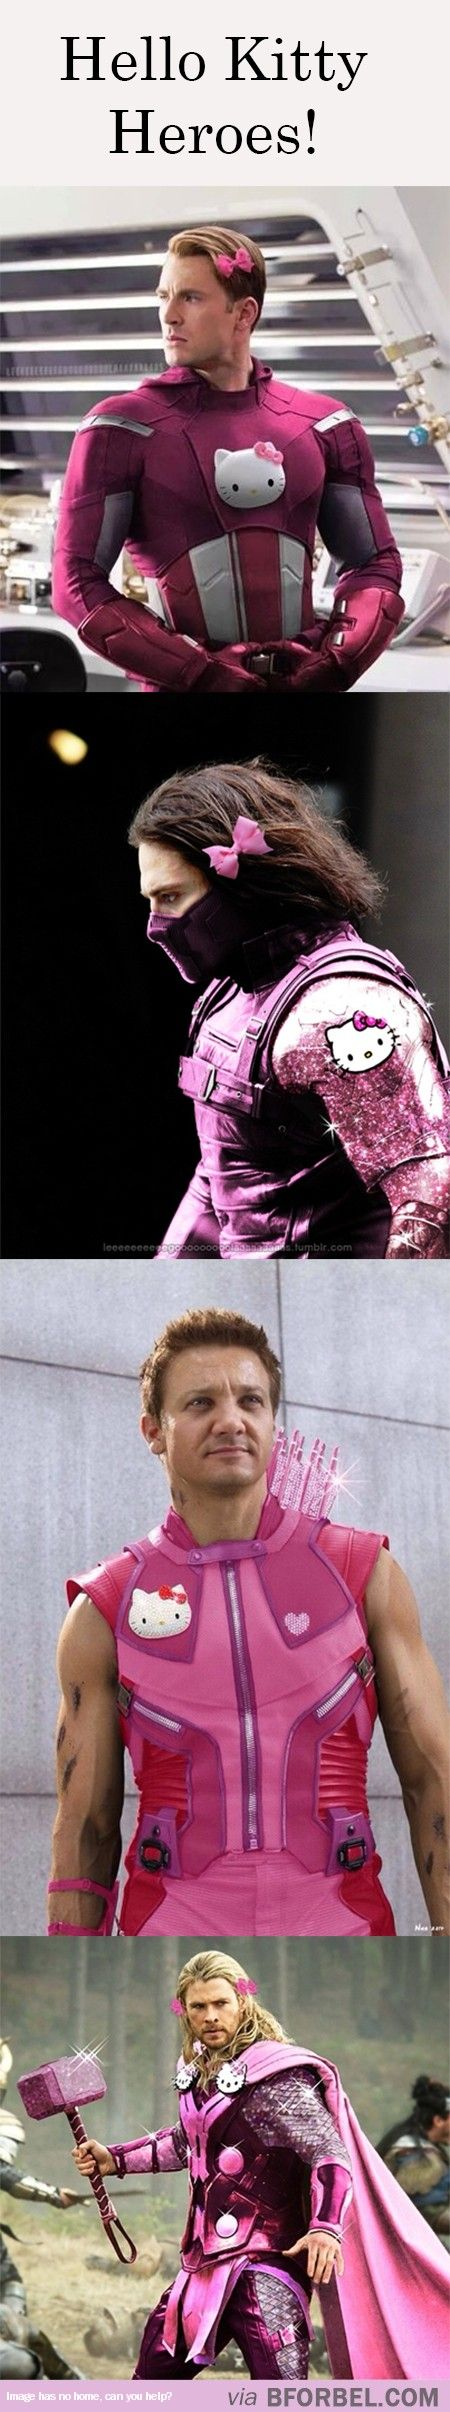 Oh gosh... I don't know if I'm okay with this... Captain America: Yeah I'm wearing Hello Kitty. You got a problem with that? Bucky: I can't believe I agreed to this! Hawkeye: I feel pretty! Thor(now with meow meow instead of Mjolnir): EYE OF THE HAWK I WILL HAVE VENGEANCE FOR THIS DISGRACE!!!